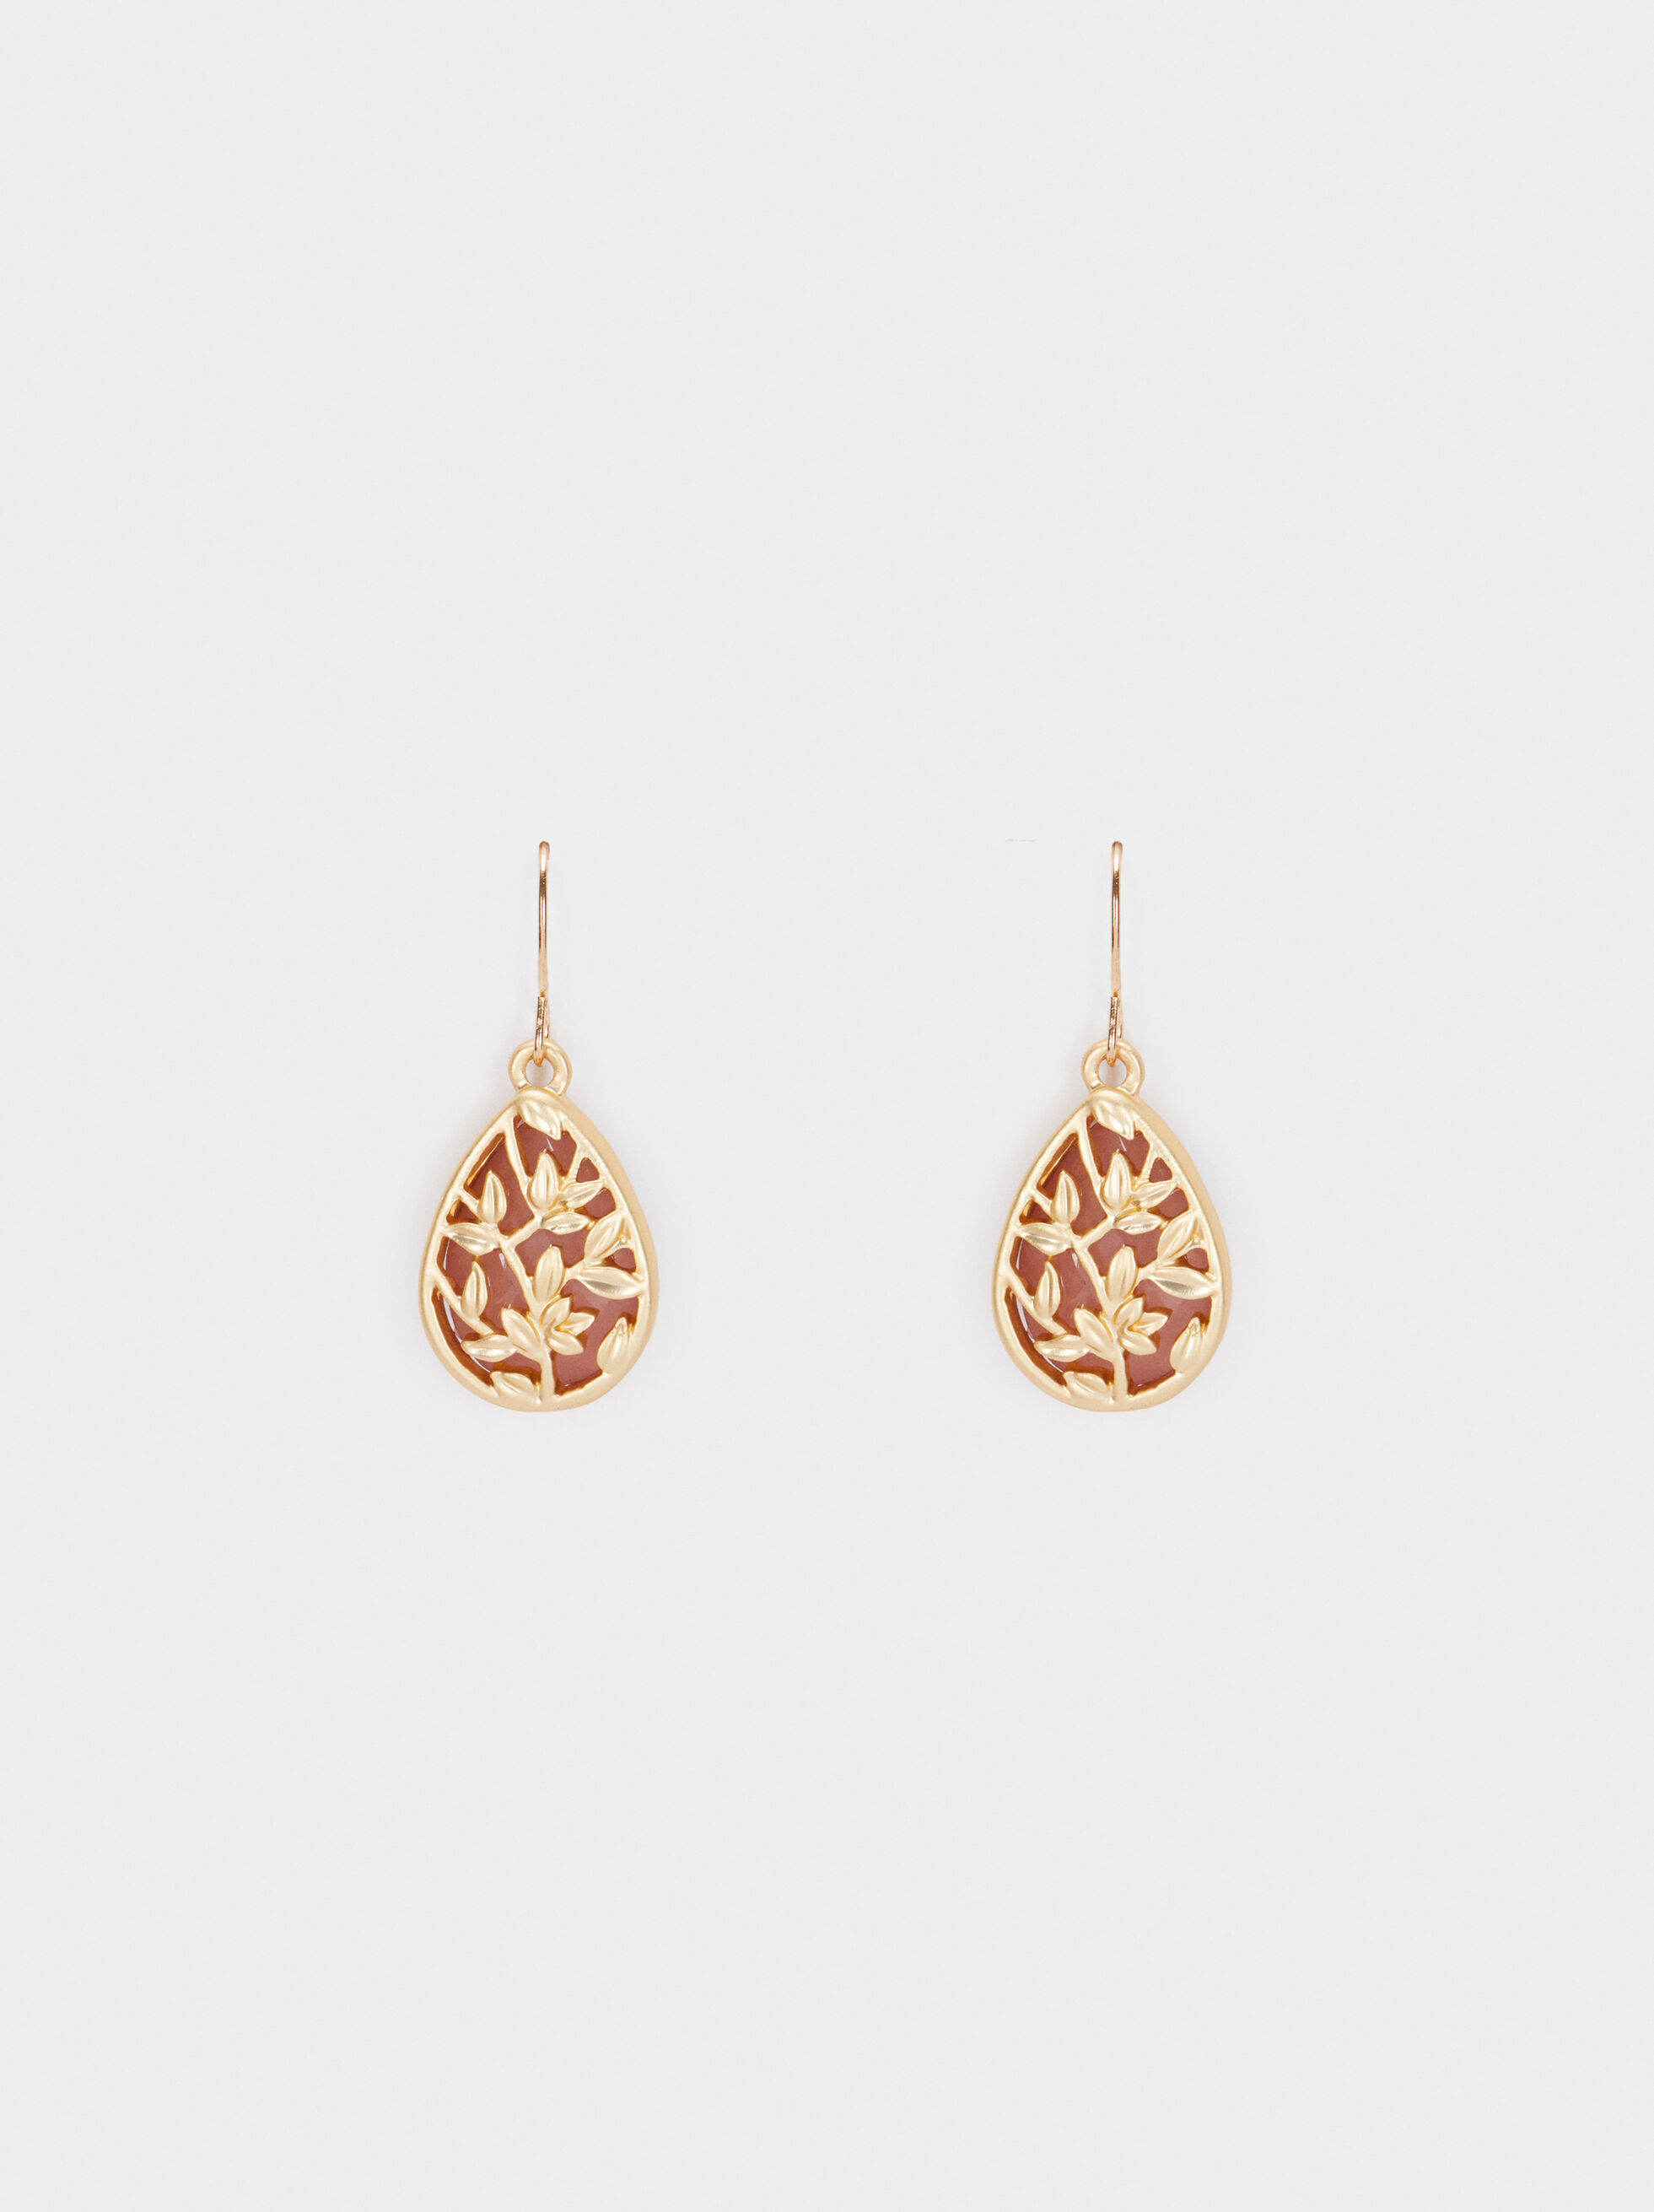 Medium Gold Earrings With Leaves, Multicolor, hi-res